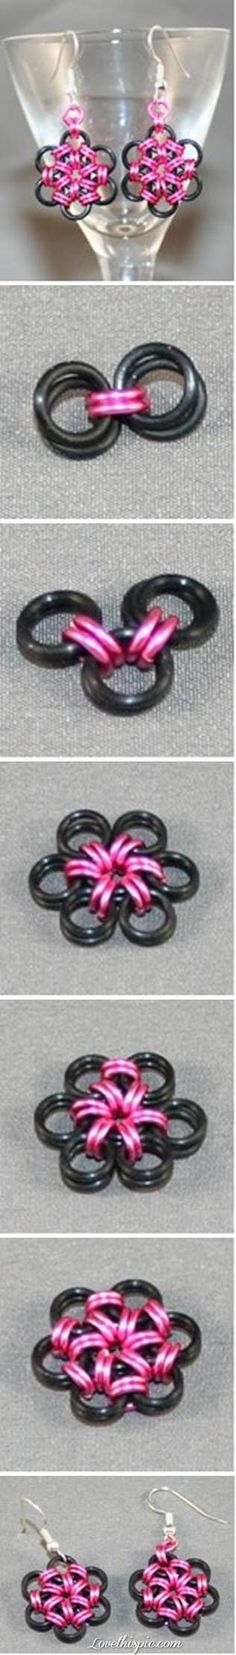 DIY Creative Metal Ring Earrings Pictures, Photos, and Images for Facebook, Tumblr, Pinterest, and Twitter